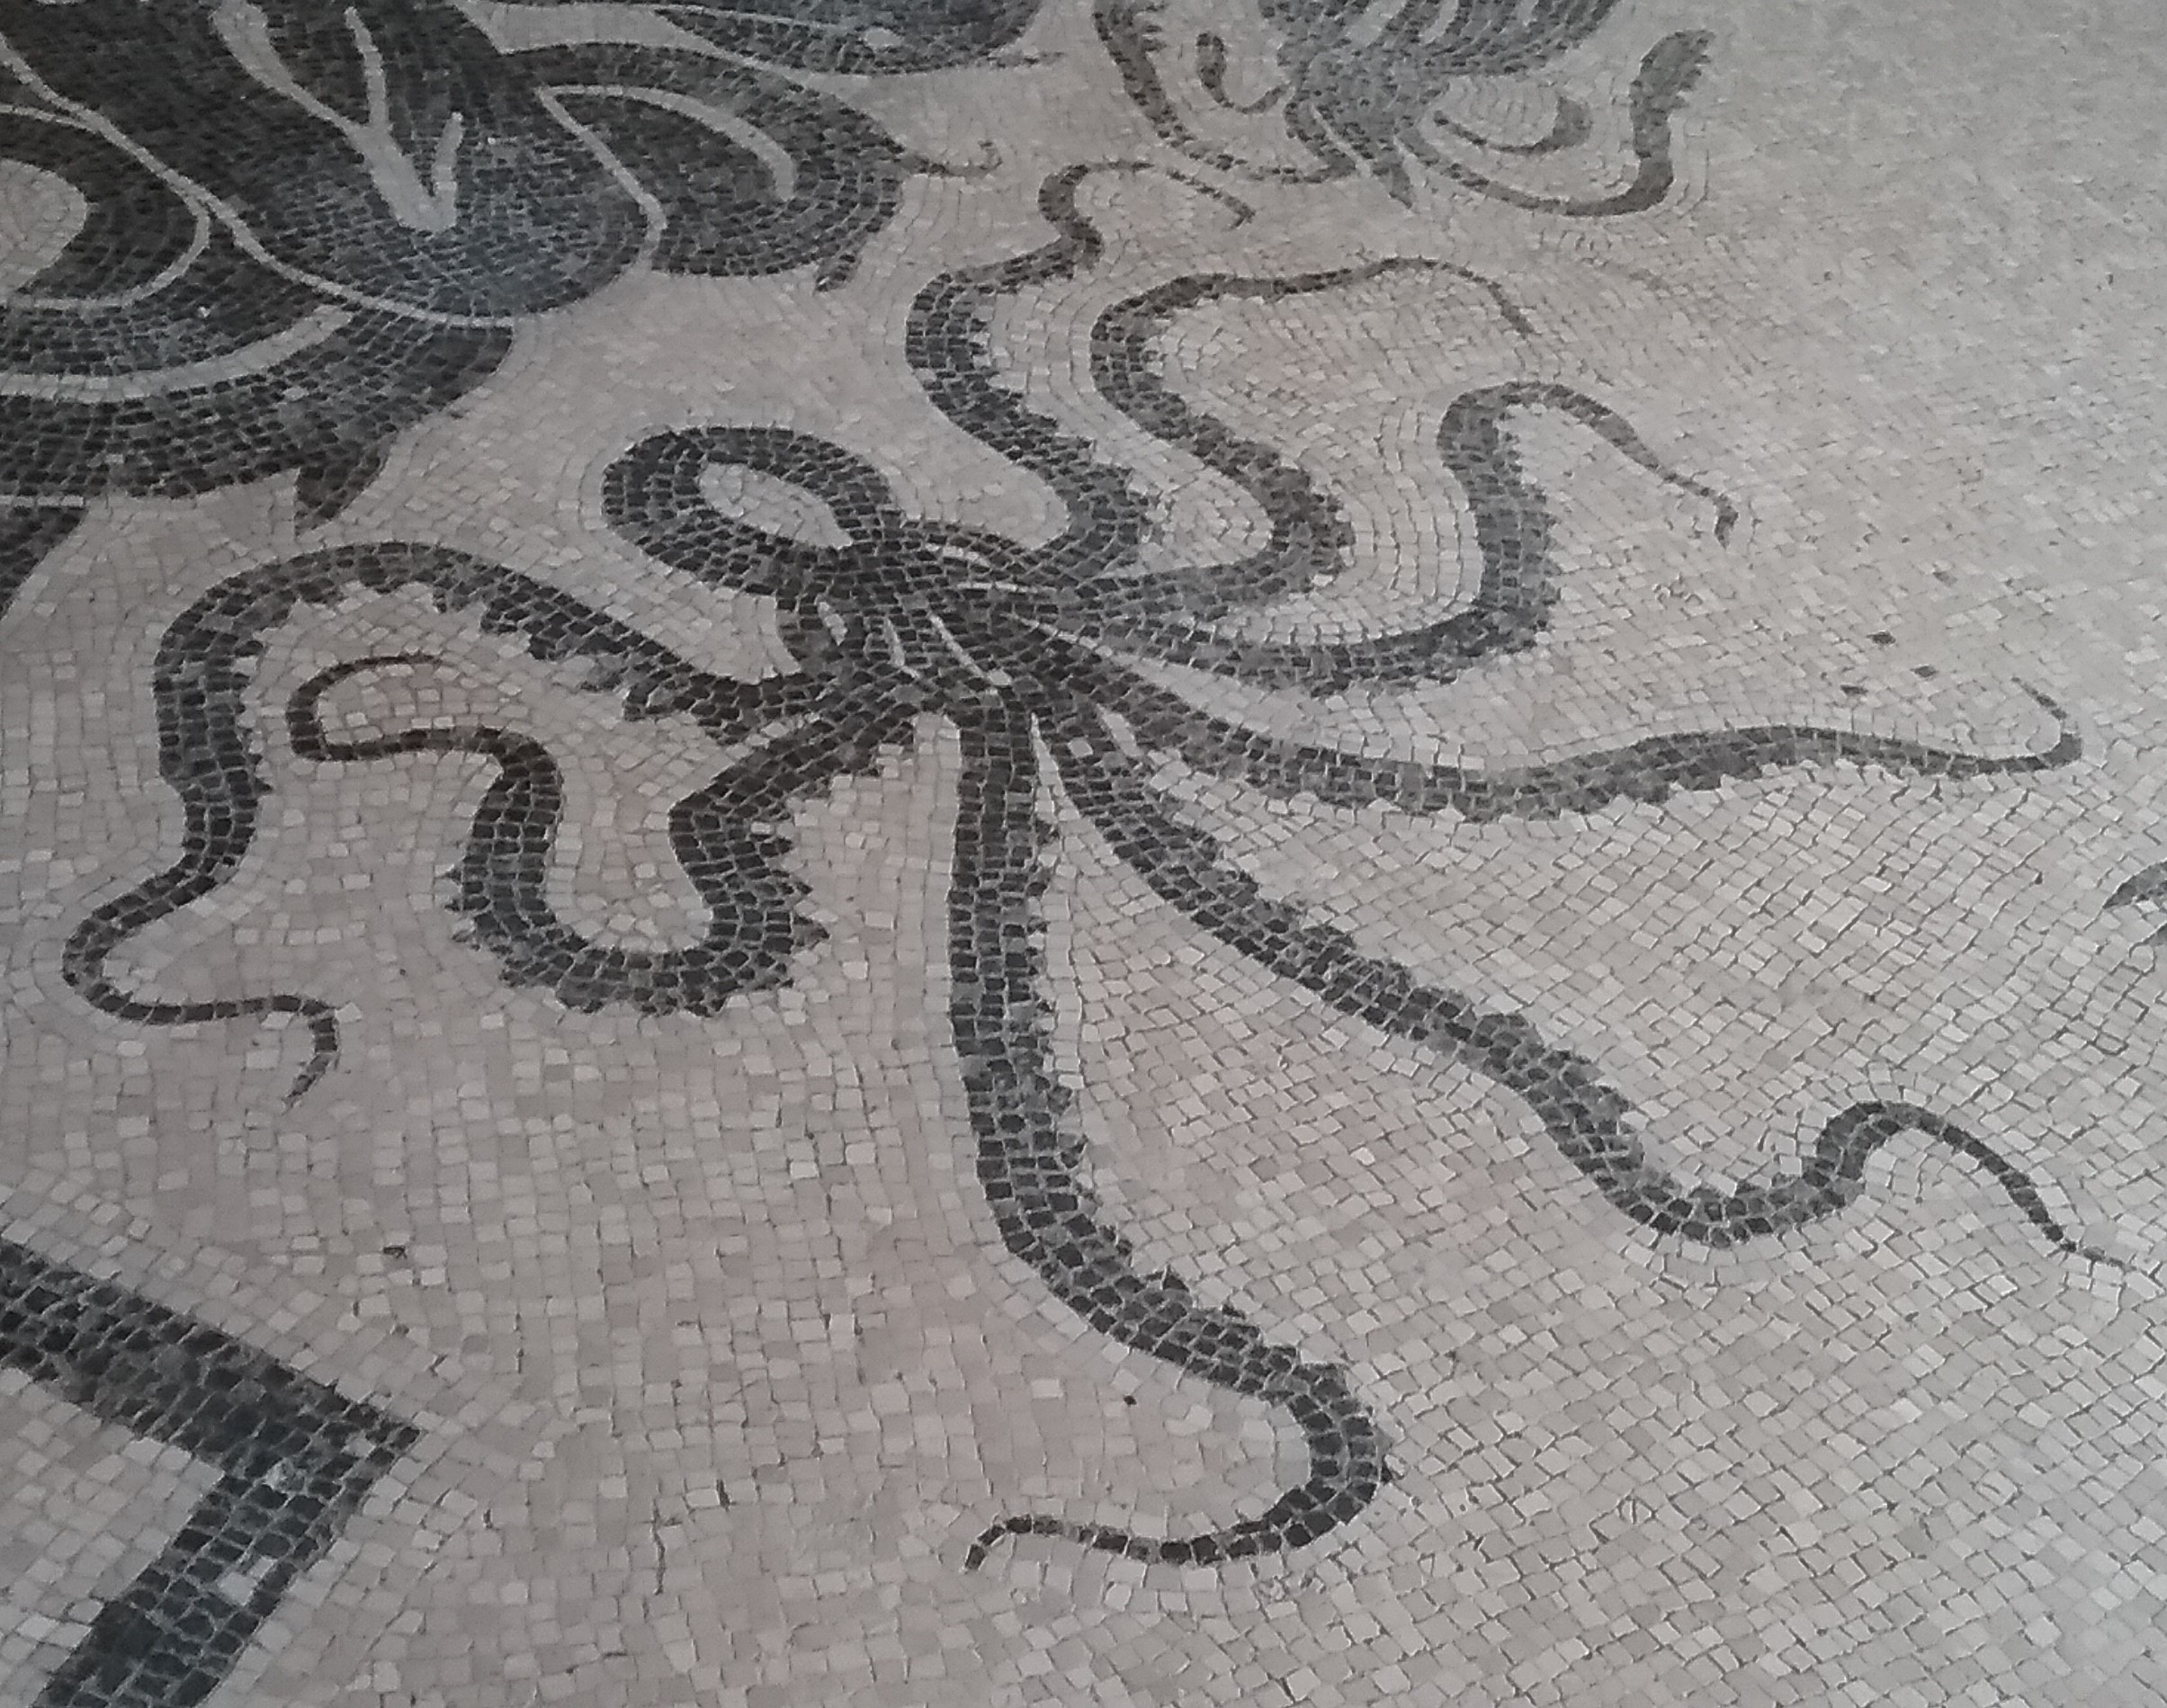 Octopus on mosaic floor